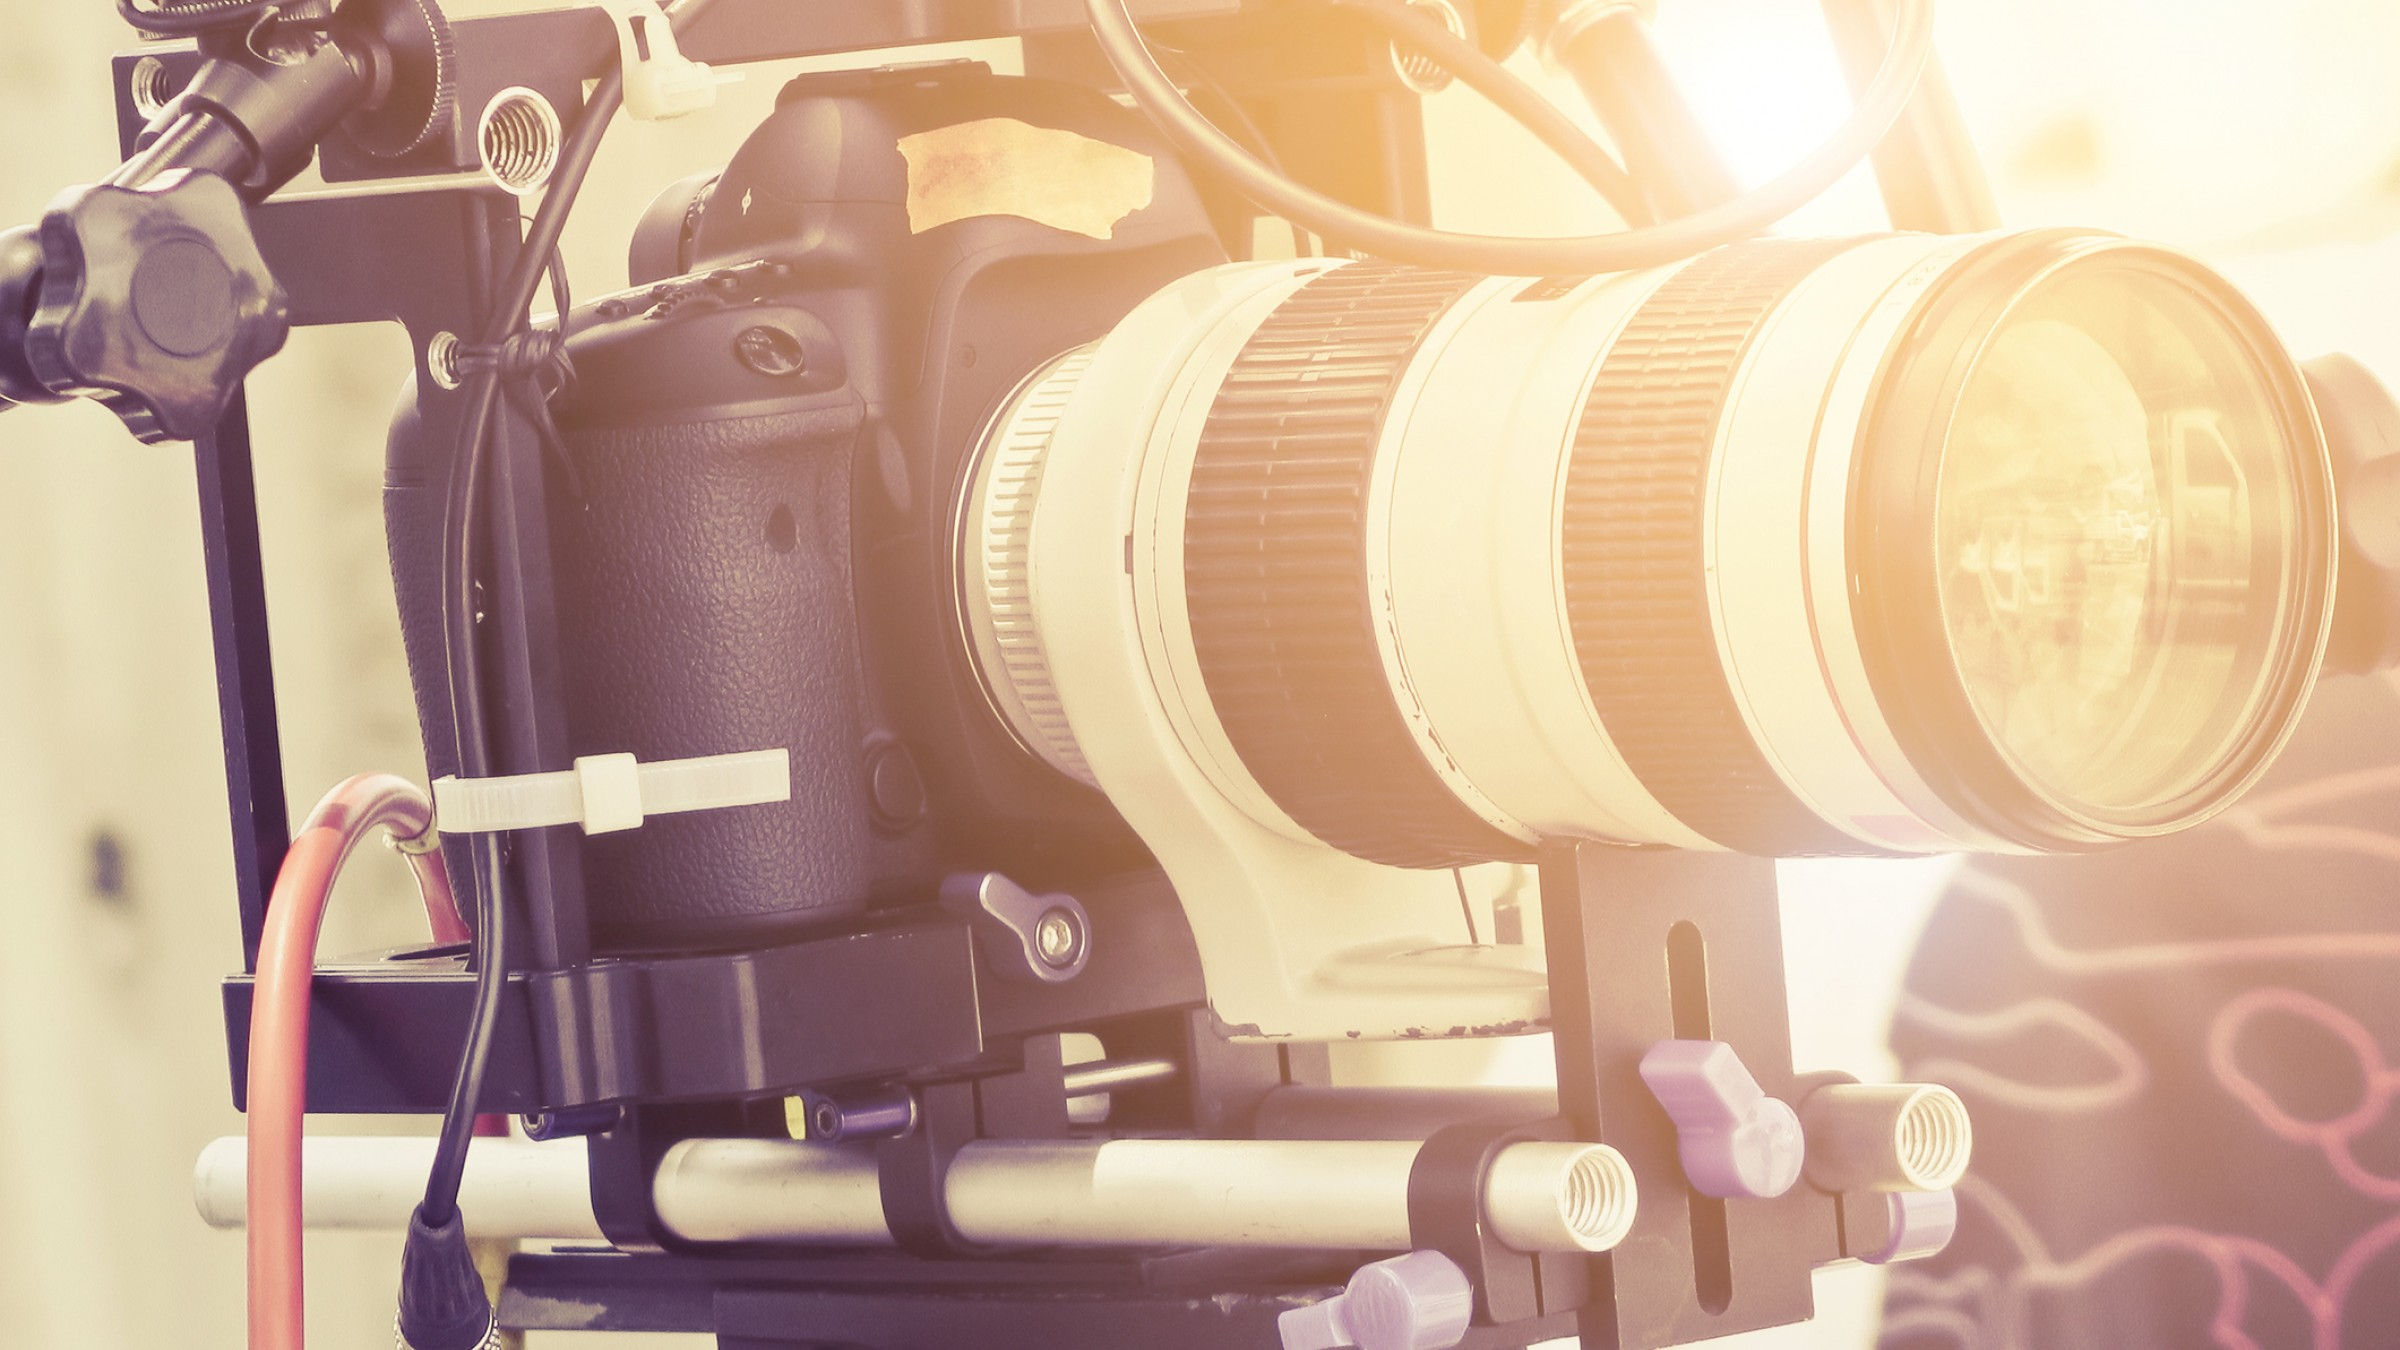 Watch: These Are the Ten Tools Every Filmmaker Should Buy